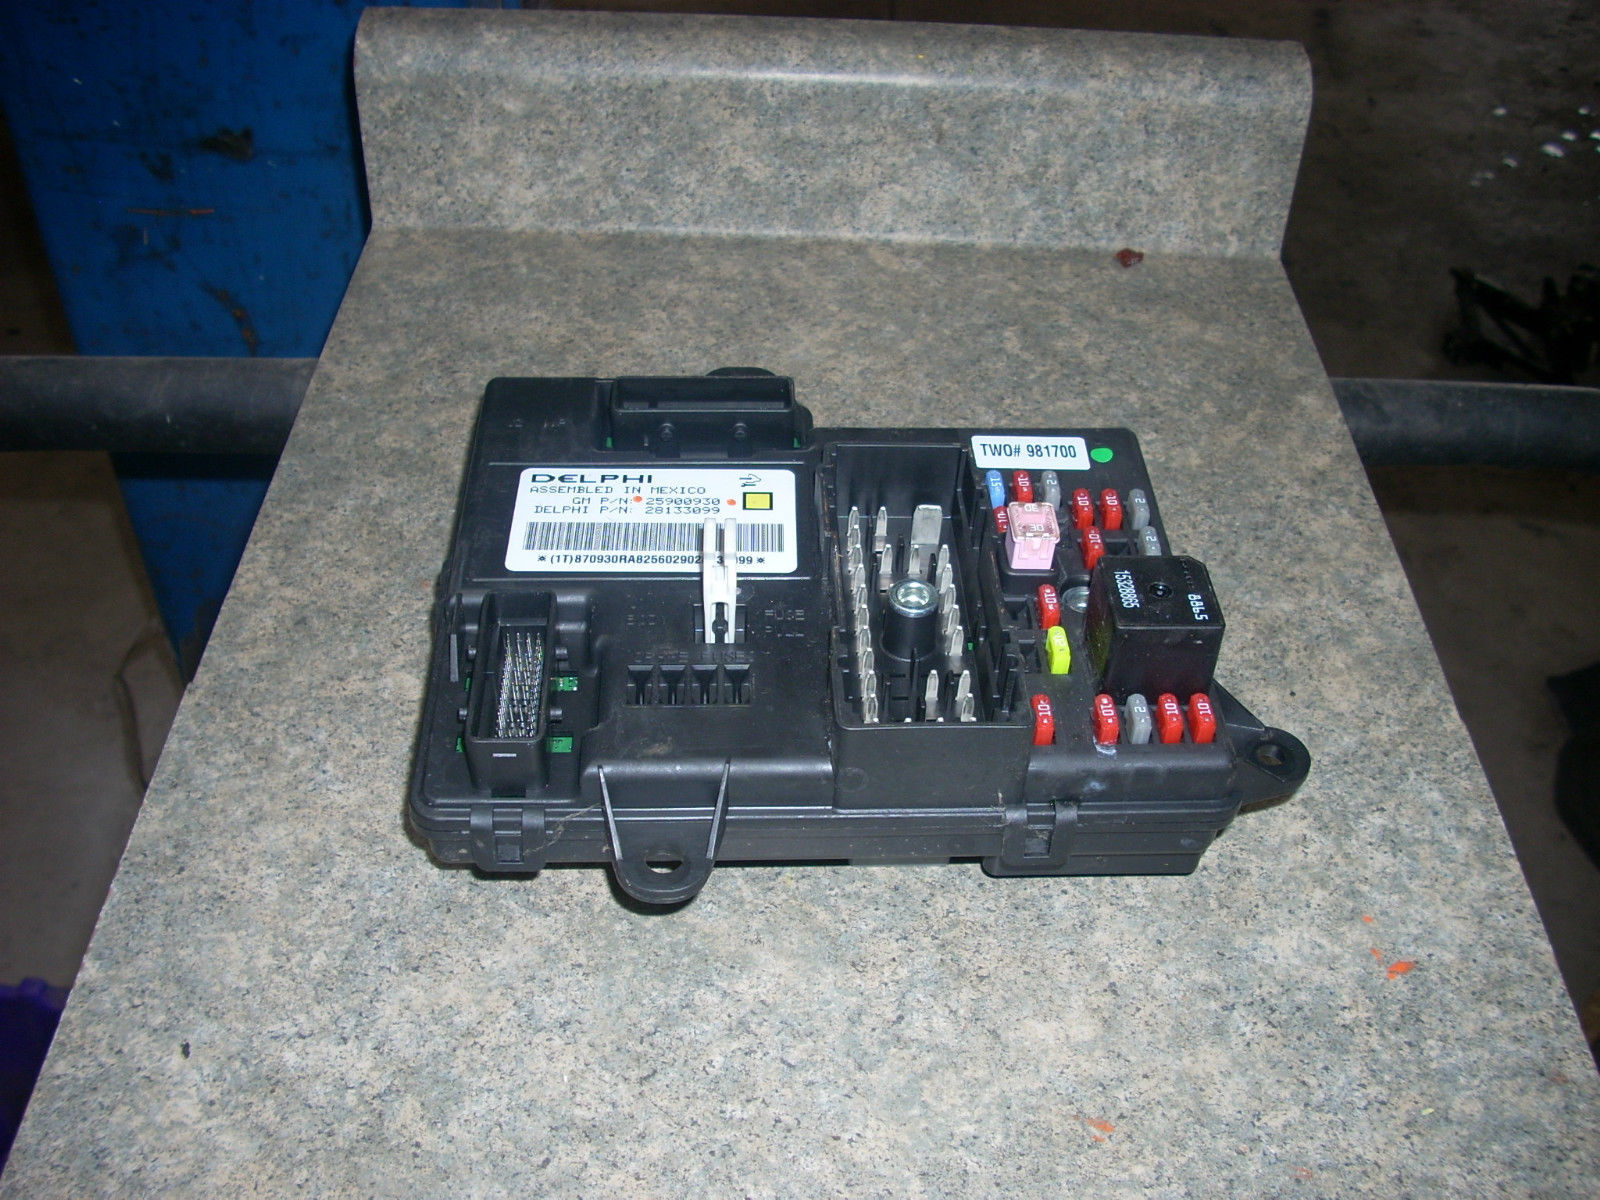 1874  fuse box with bcm 1874 id  25900930